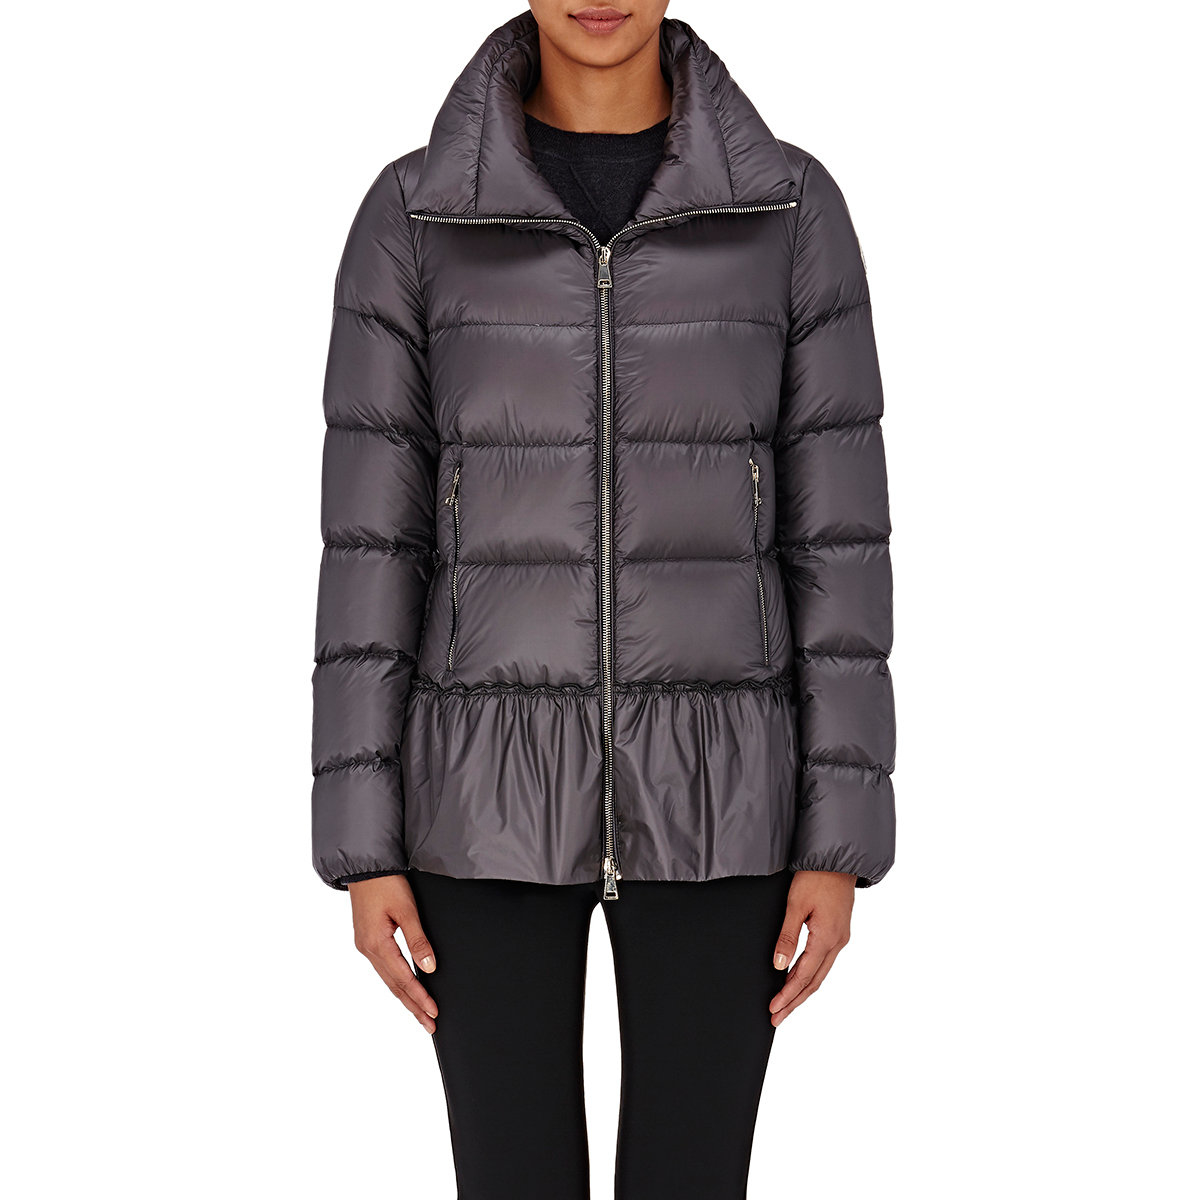 Lyst - Moncler Anet Peplum Down Jacket in Gray